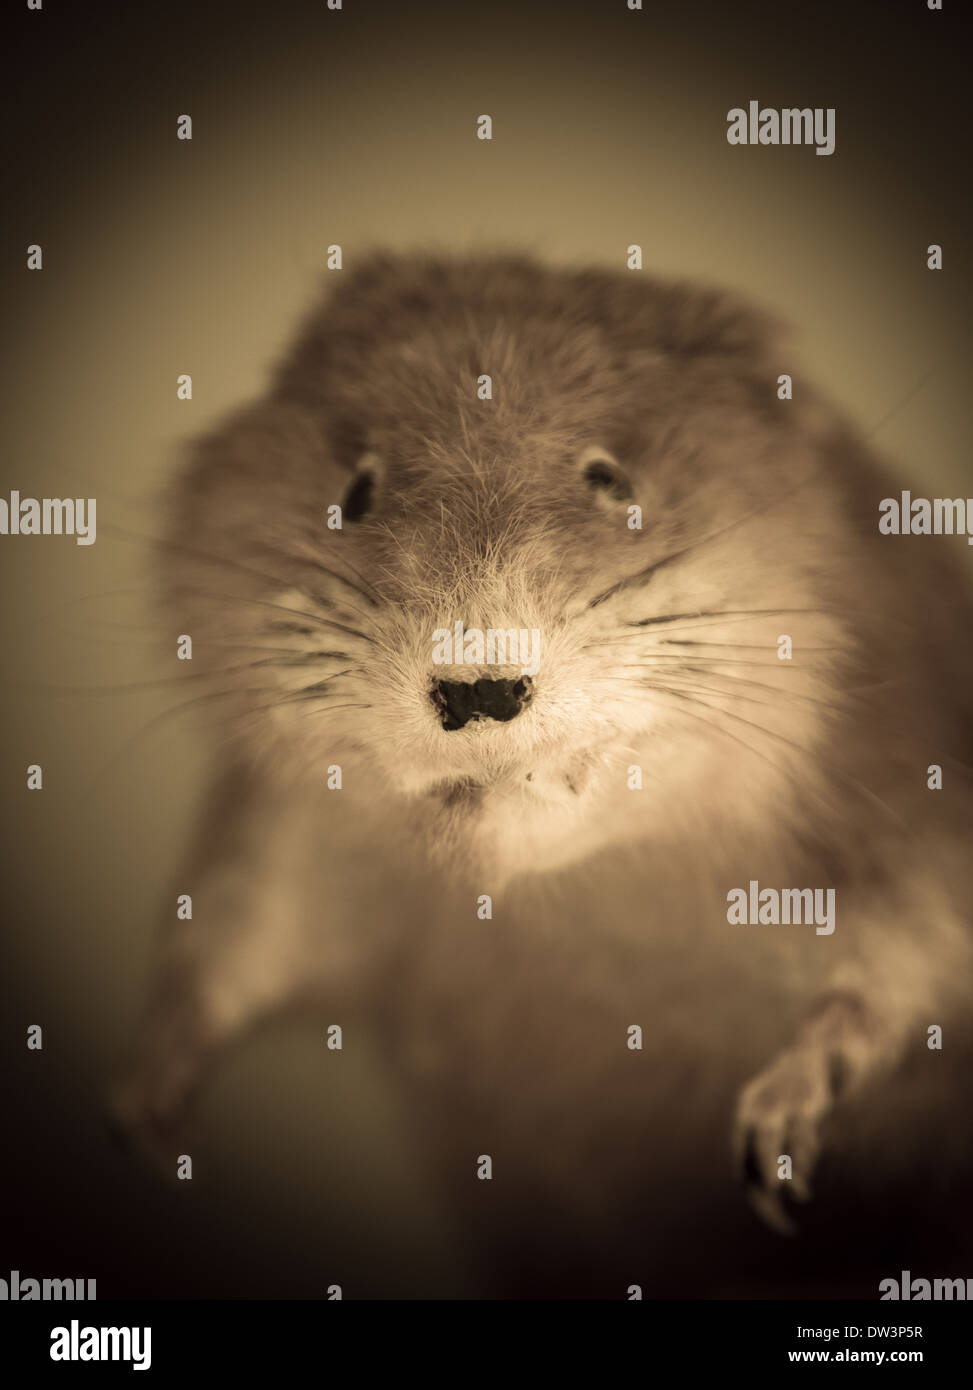 Closeup of stuffed rodent. - Stock Image